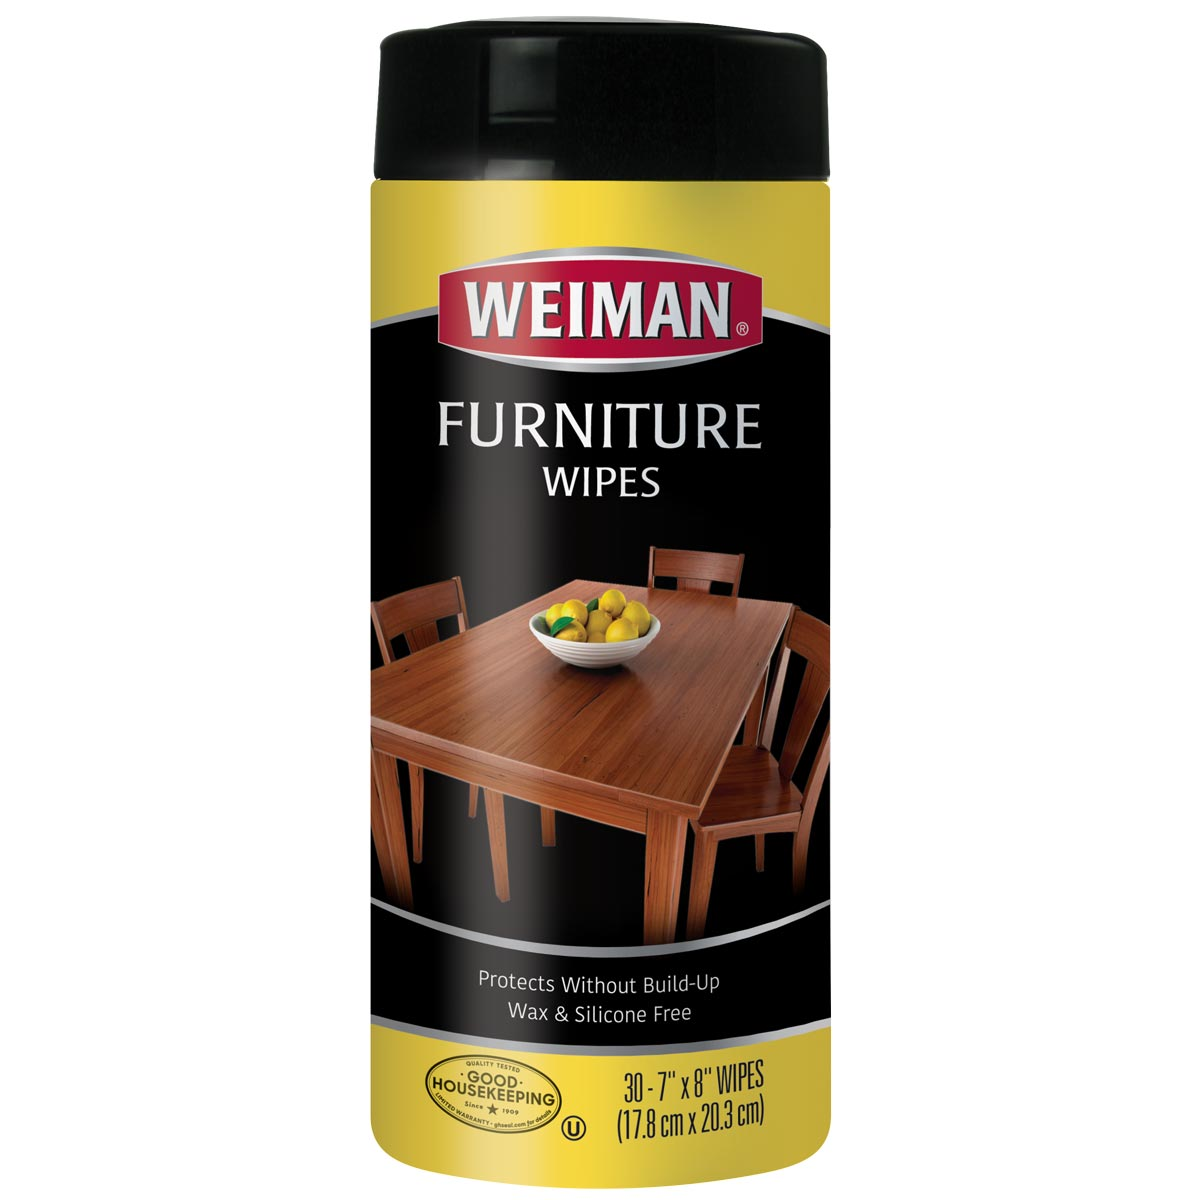 https://googone.com/media/catalog/product/w/e/weiman-furniture-cleaning-wipes_front_7.jpg